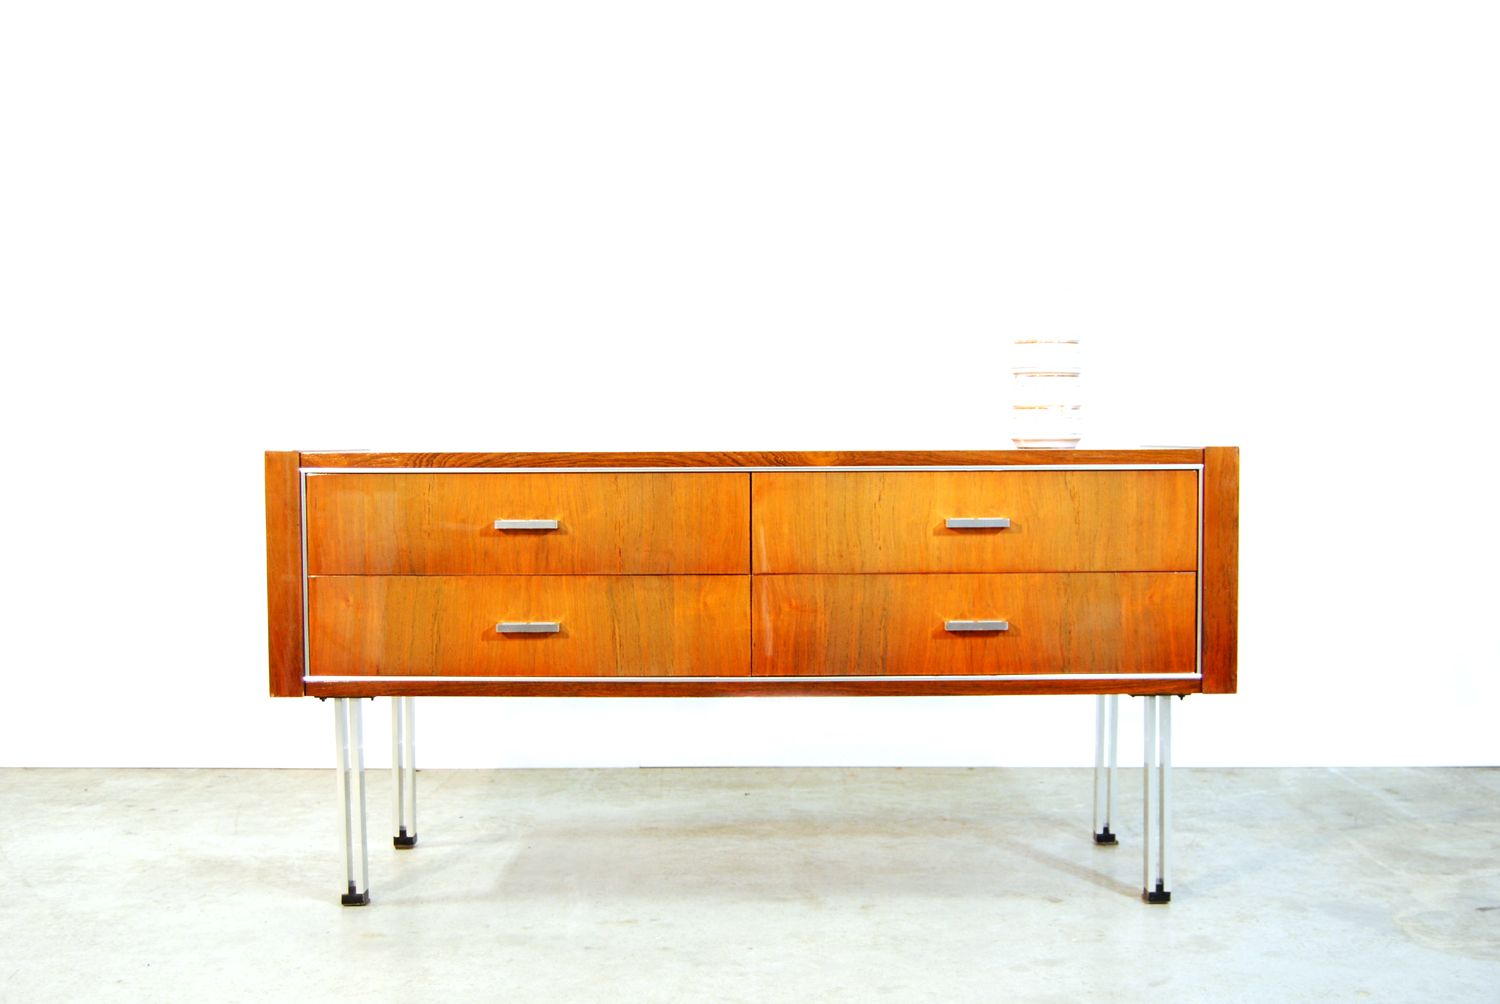 modern sideboard rules with Modern Walnut Veneer Sideboard 1970s 1 on Media Center Design Ideas Living Room also Round 9 Feature Match Dave Williams Usa Vs Mike Pustilnik Usa 2015 as well Mid Century Modern Italian Sideboard 1 as well 474989091931804613 further Mid Century Modern Sideboard From Paul Mccobb 1960s.